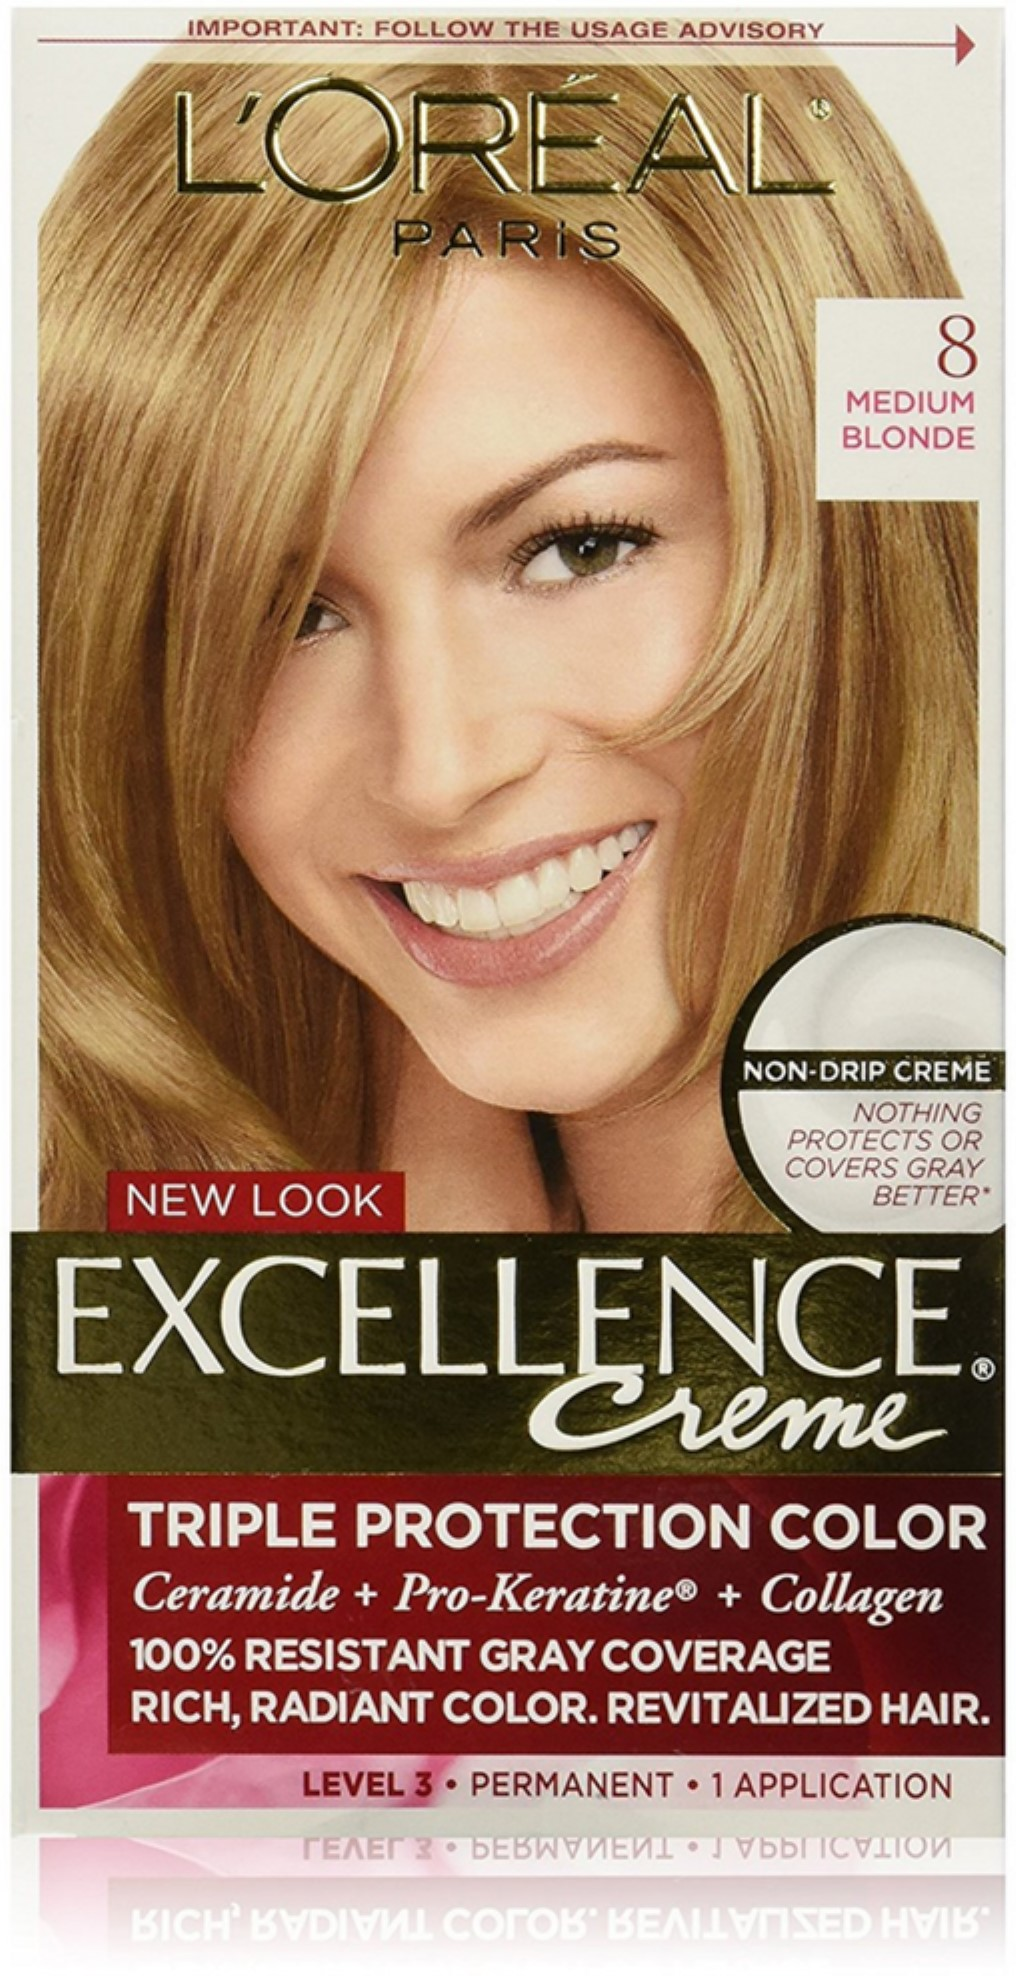 6 Pack Loreal Paris Excellence Crme Permanent Hair Color 8